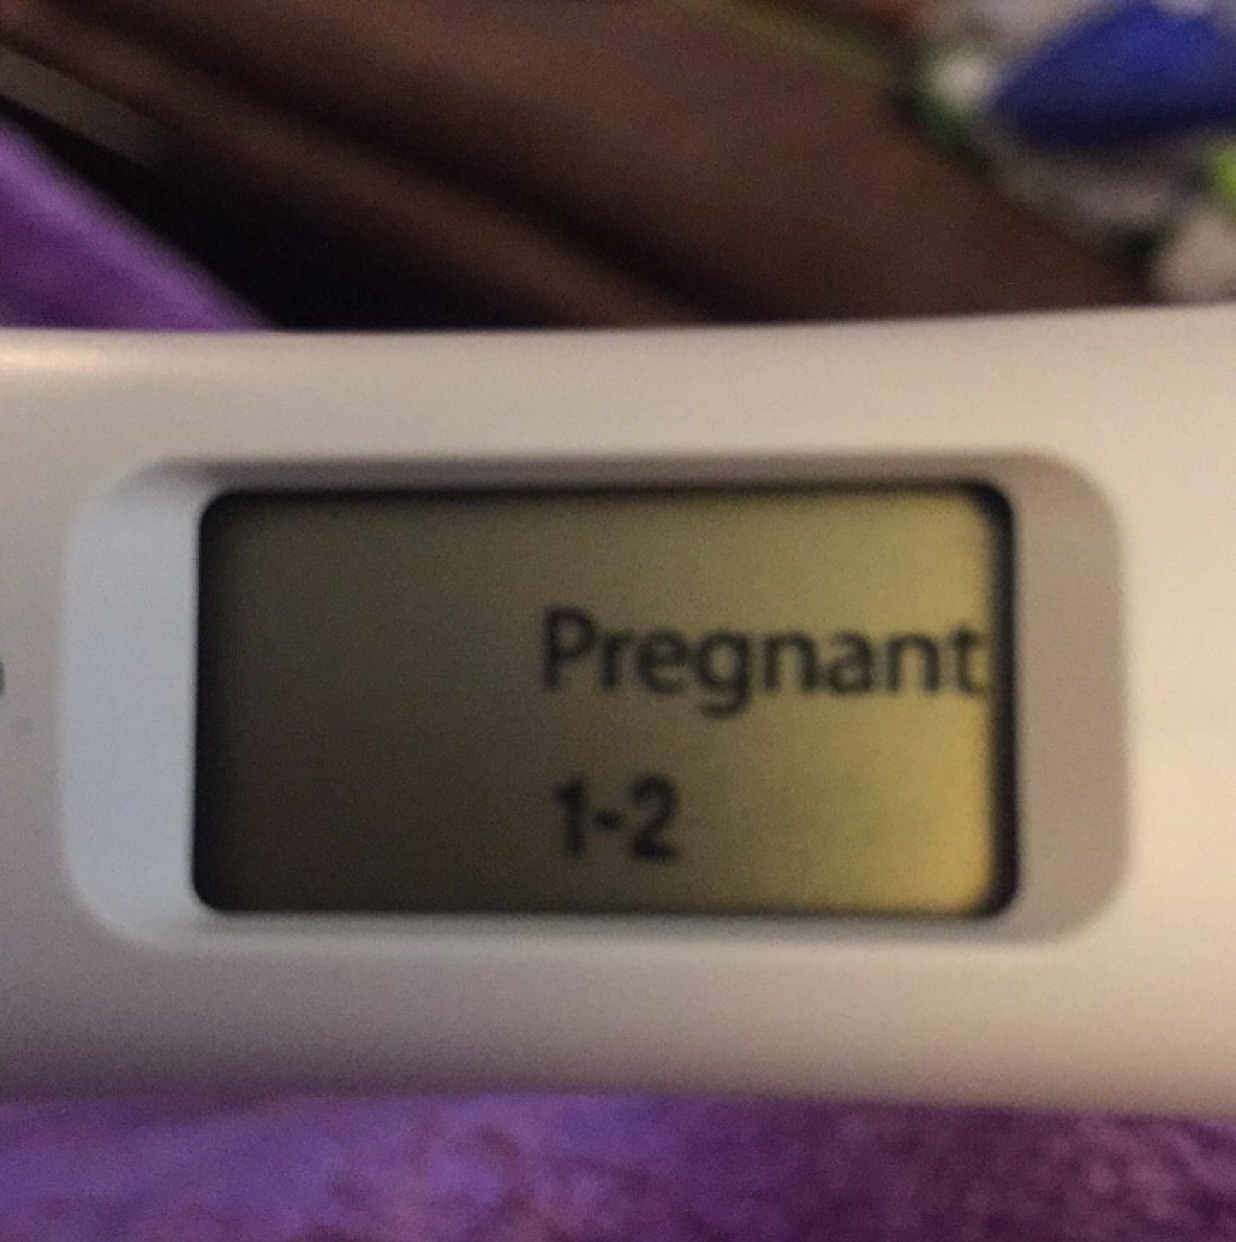 2nd Pregnancy Test Both Said The Same Thing 3 Days Late So Excited And Scared Too Since I Recently Had A Miscarriage Two Months Ago E2 9d A4 Prayers For A